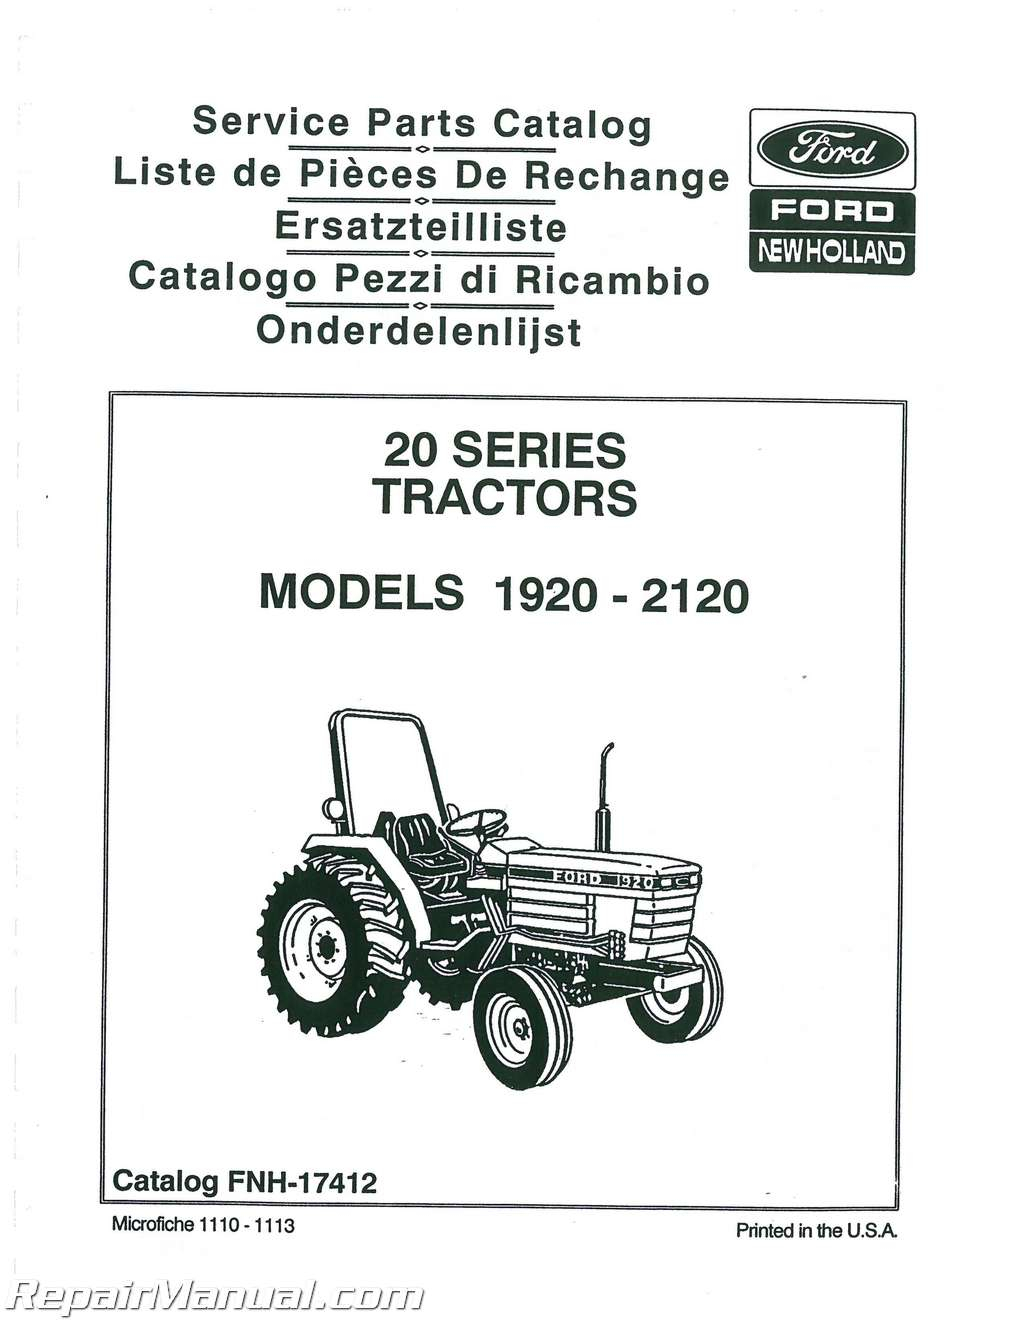 New Holland Skid Steer Parts Diagram Ford 1920 2120 Tractor Parts Manual